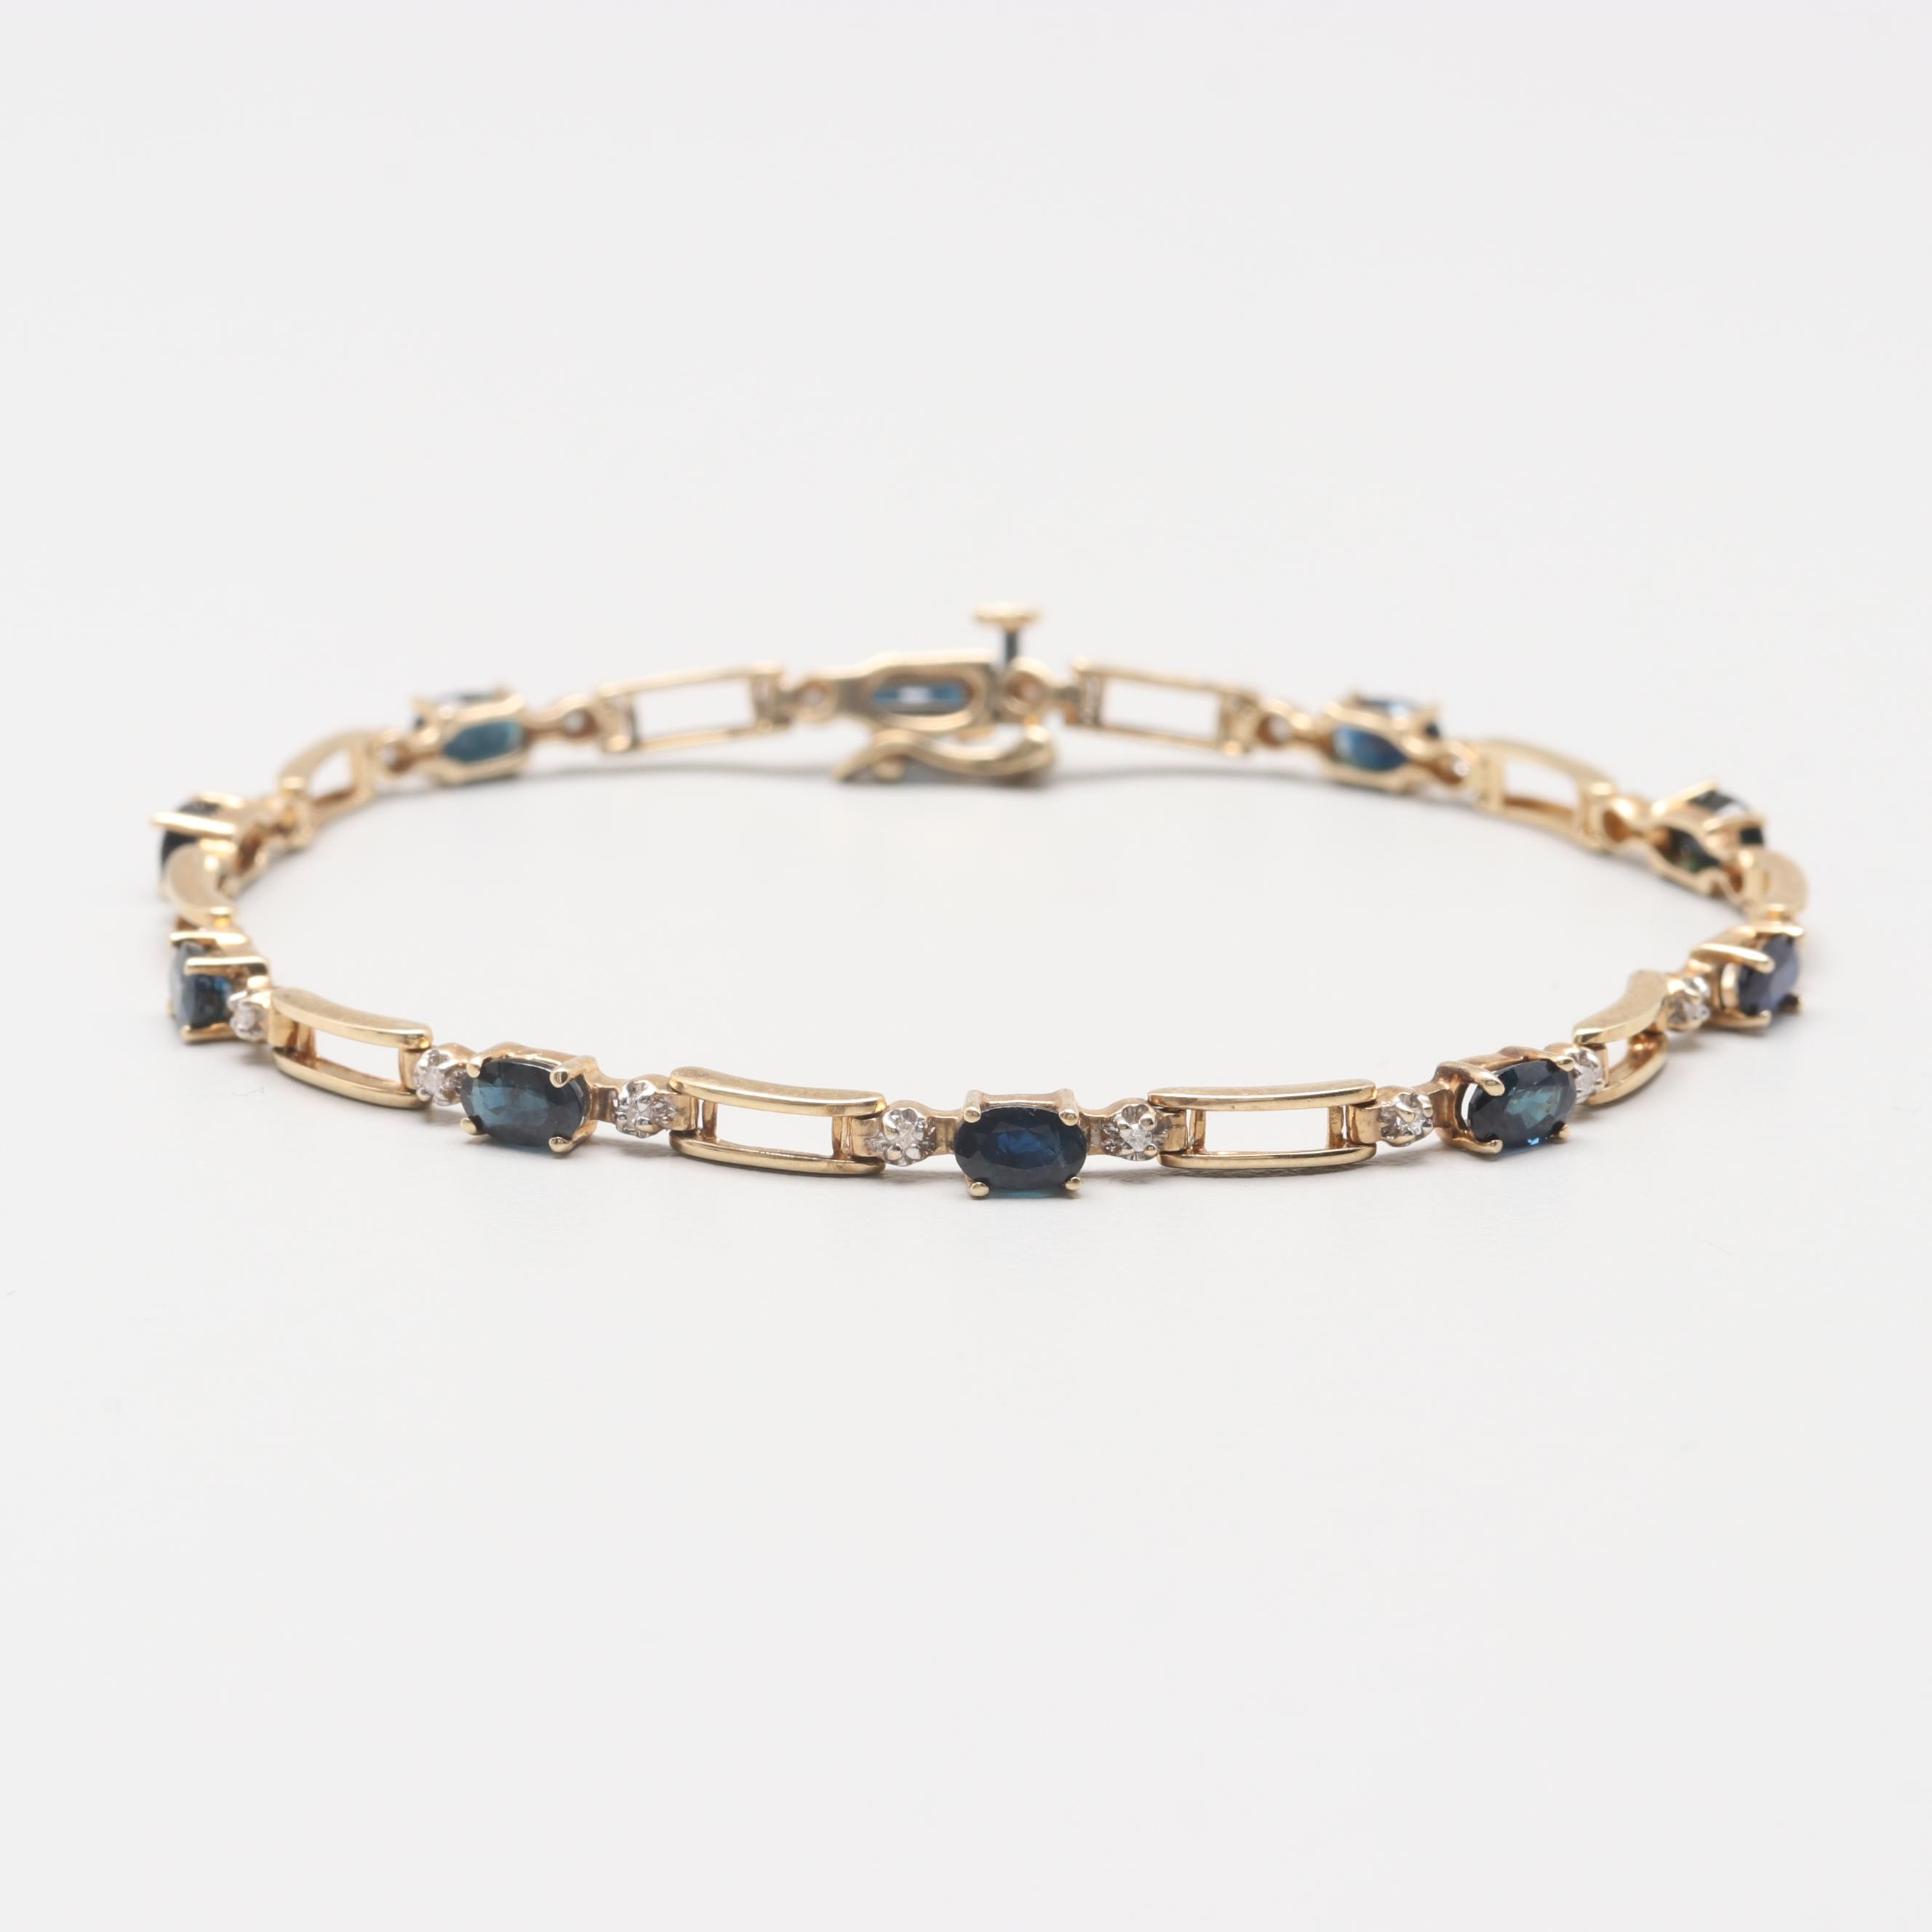 10K Yellow Gold Blue Sapphire and Diamond Bracelet